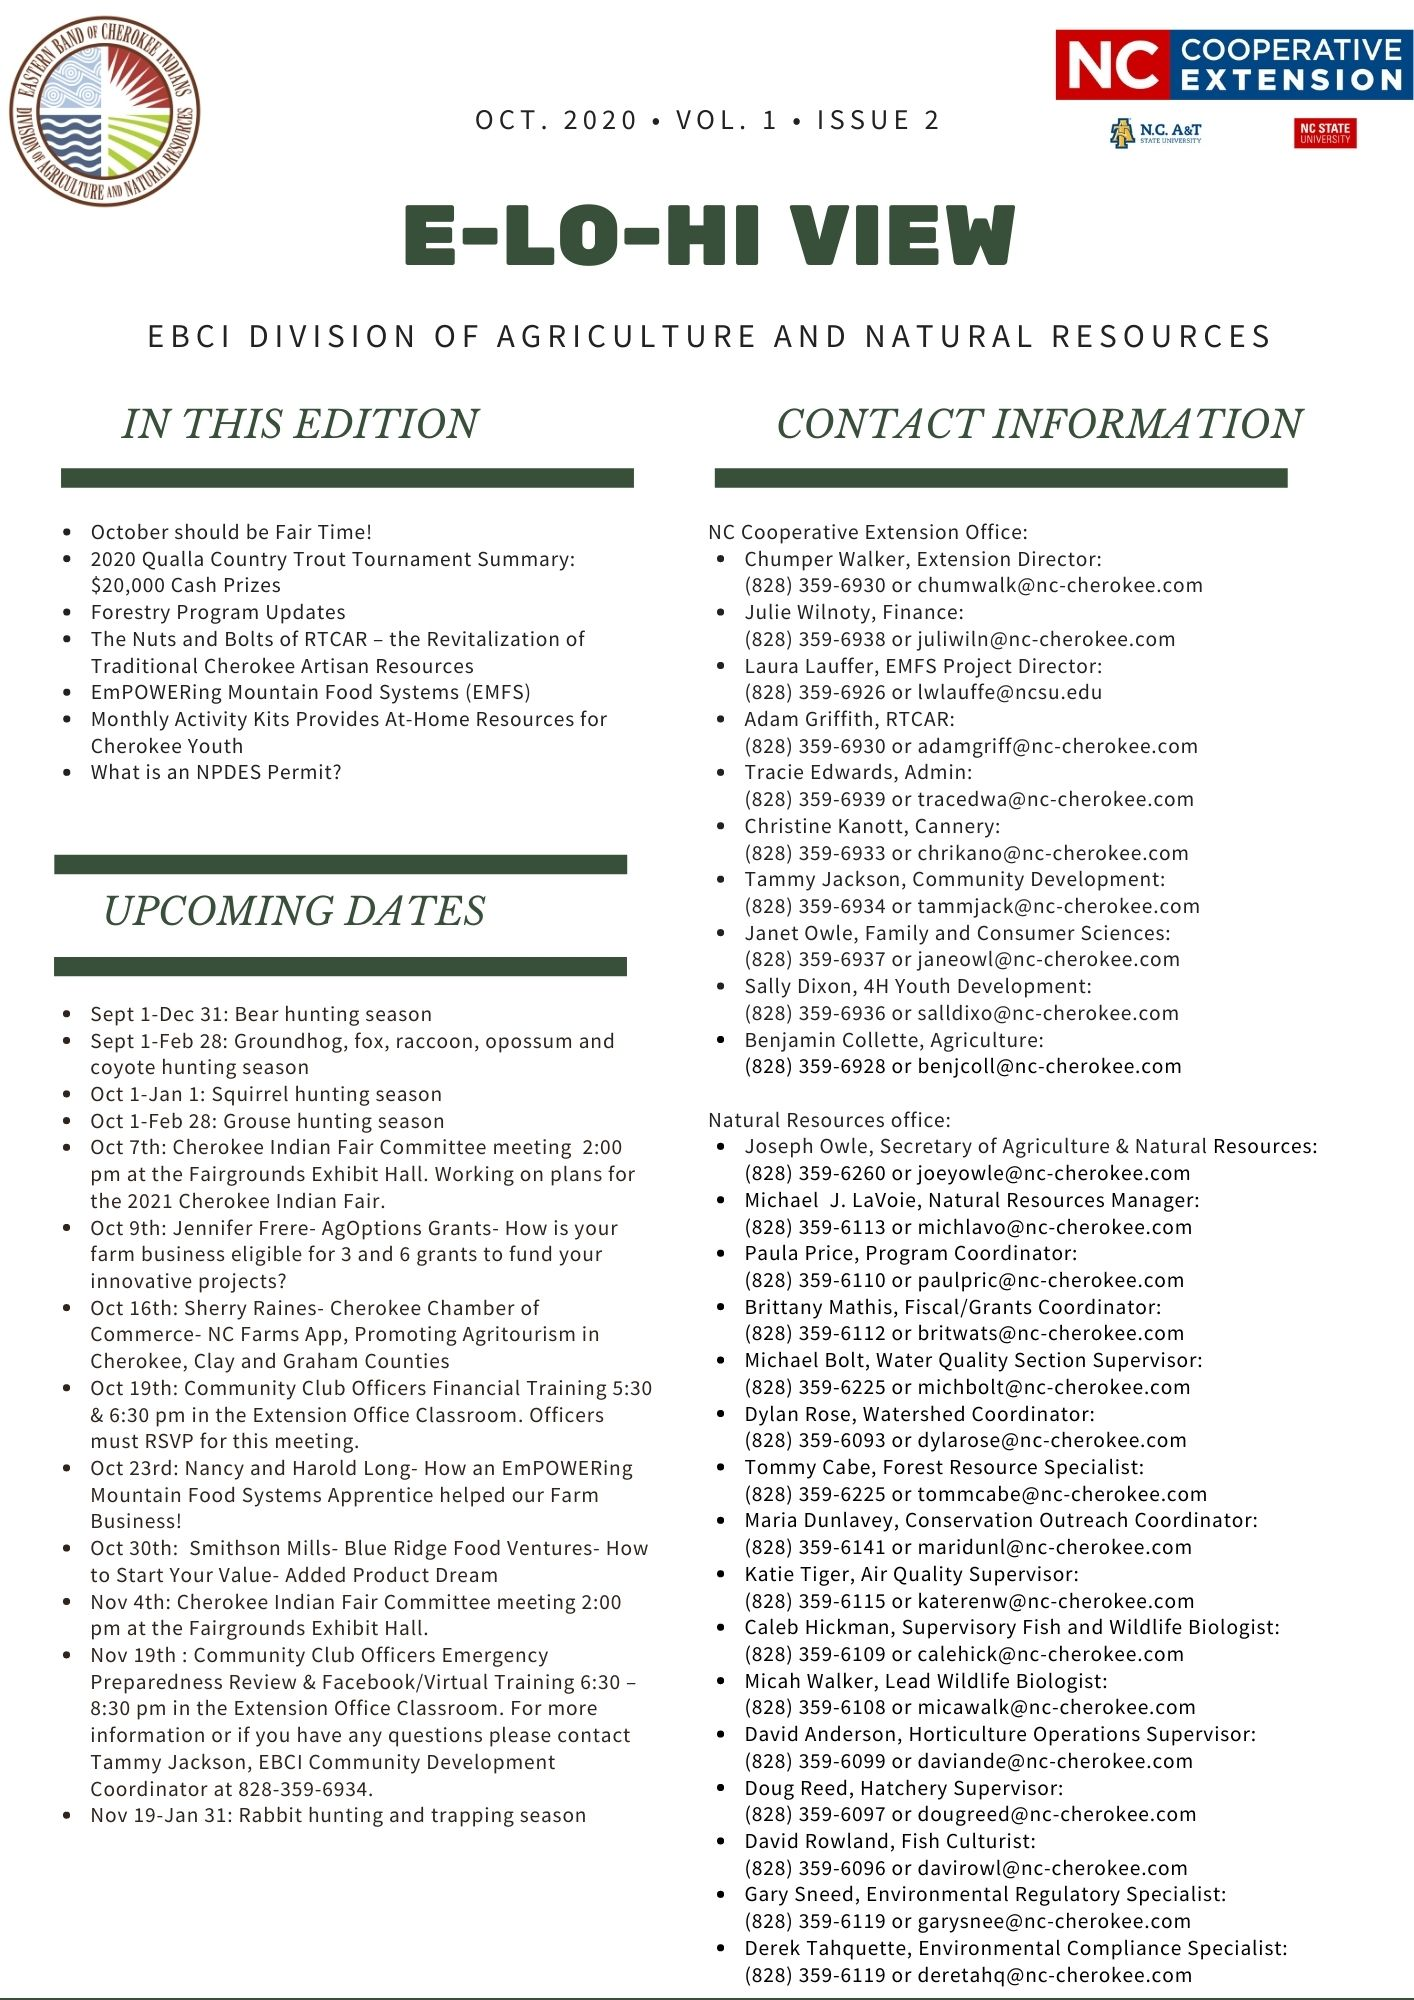 Agriculture and Natural Resources newsletter page 2